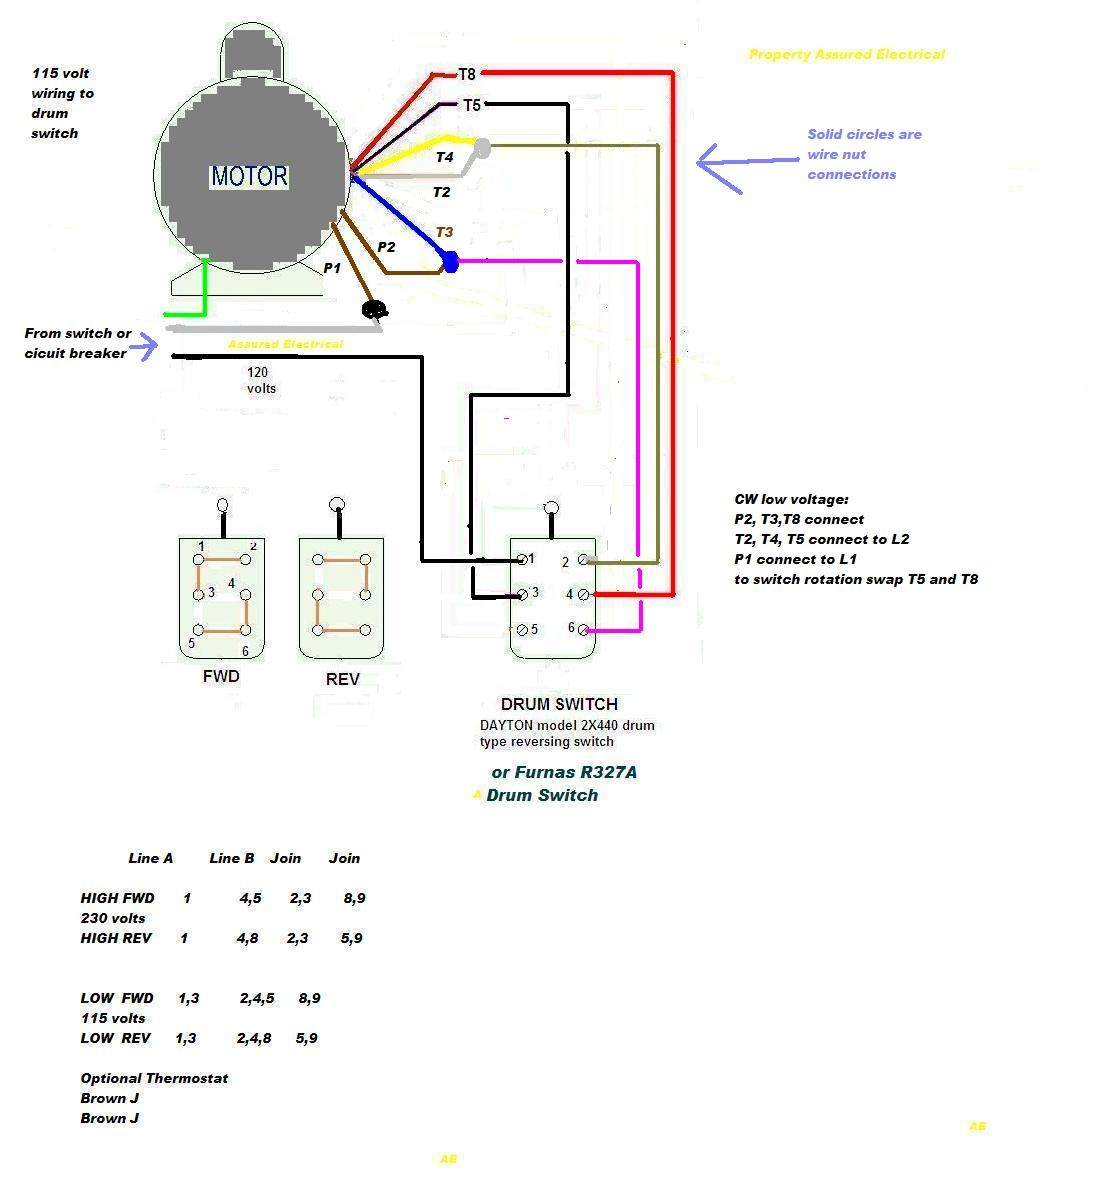 hight resolution of 110 motor wiring diagram wiring diagram110 motor wiring diagram wiring diagram datasource110 volt electric motor wiring